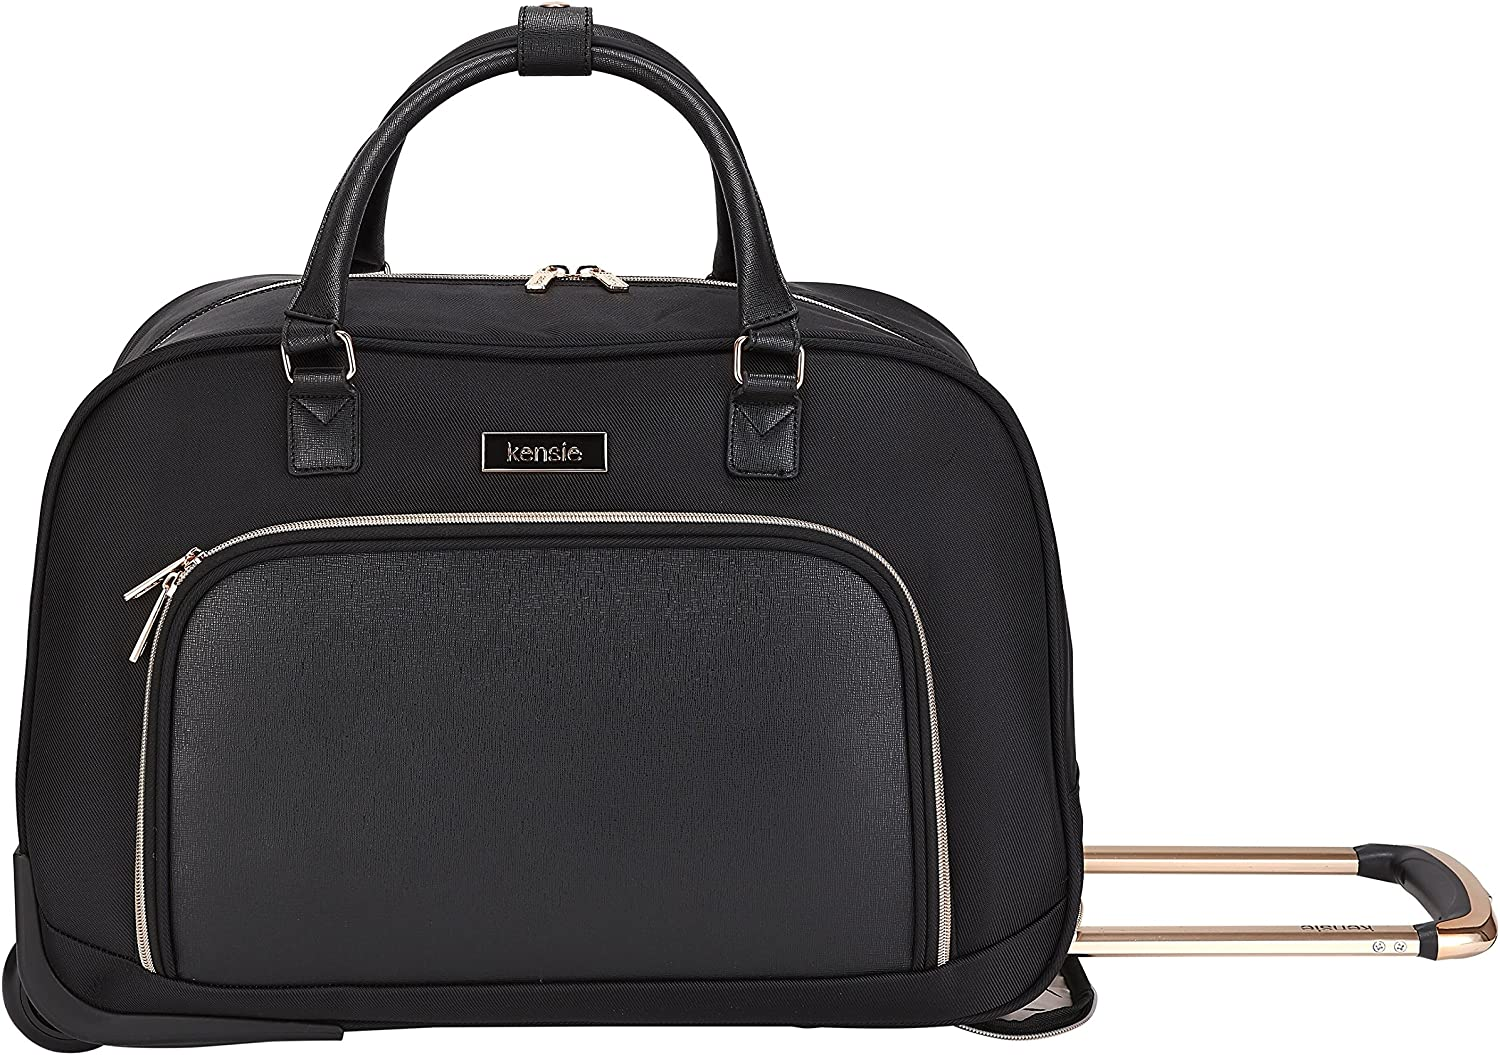 kensie 22 Black Twill Pattern with Gold Trims Rolling Duffel Travel Tote